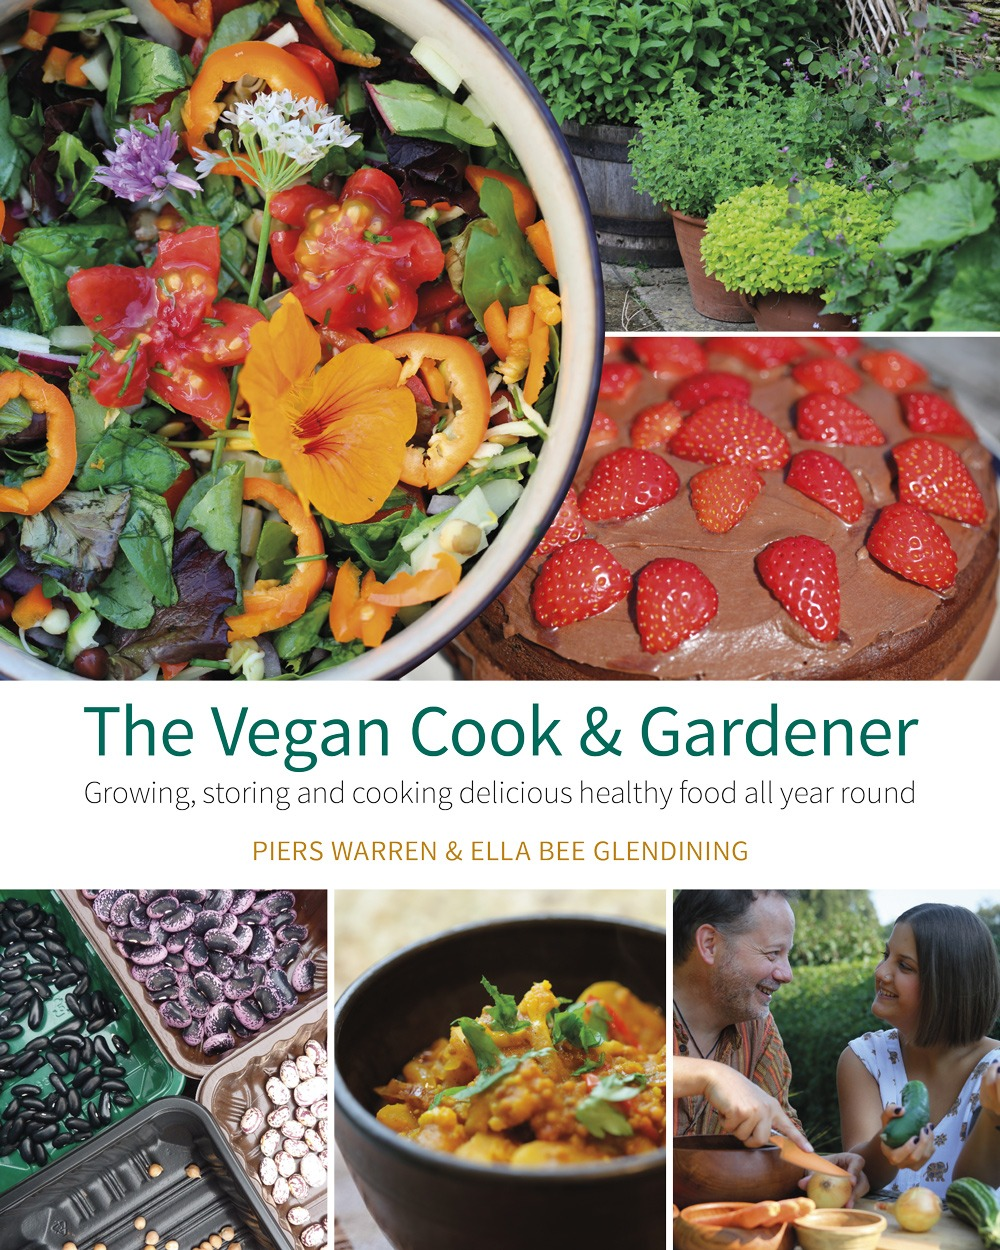 Vegan Cook & Gardener: Growing, Storing and Cooking Delicious Healthy Food all Year Round by Piers Warren and Ella Bee Glendining